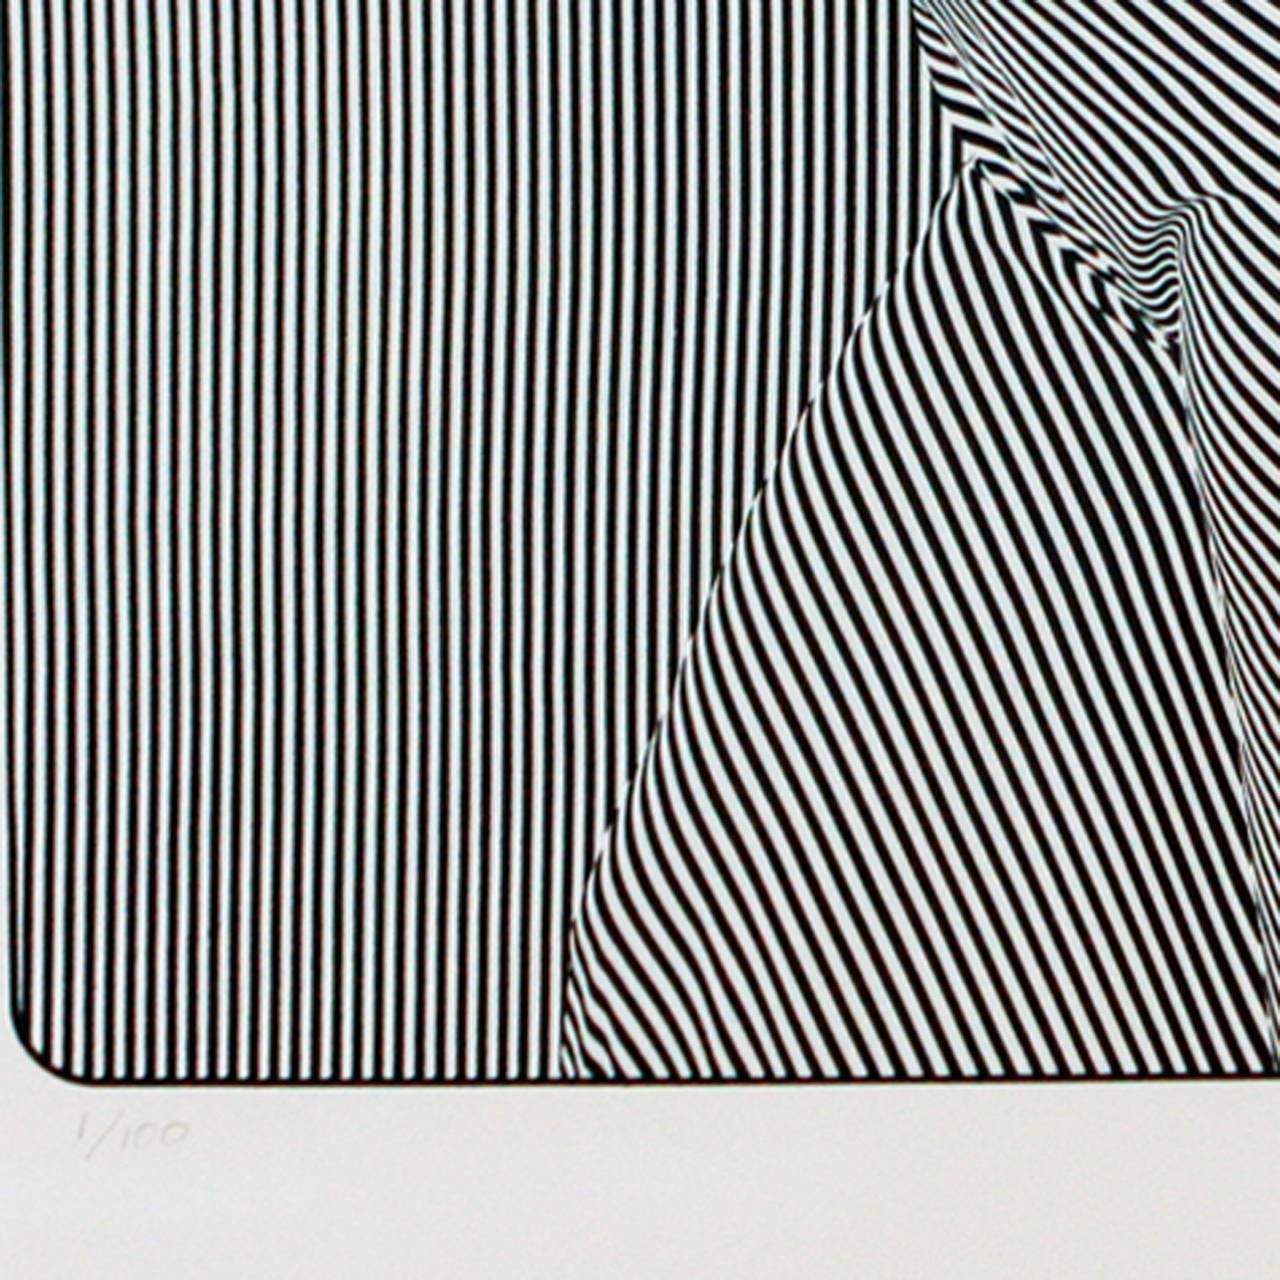 Op Art Lithograph, J Seeley In Excellent Condition For Sale In New York, NY